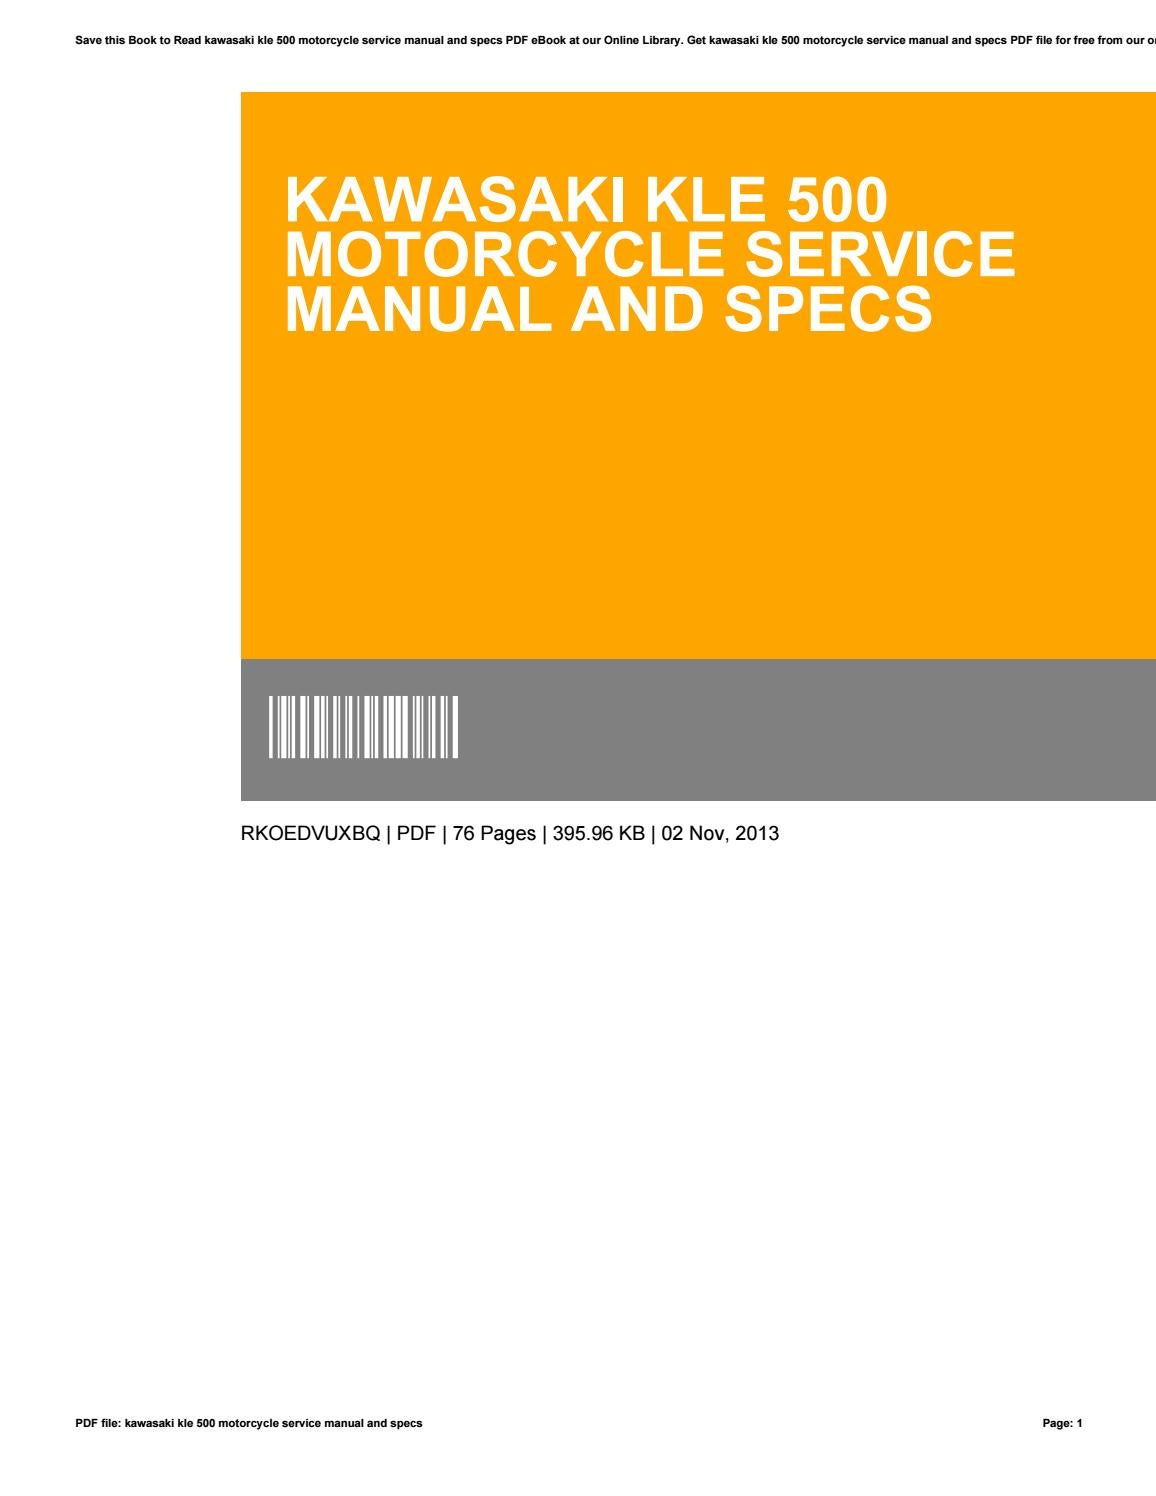 Kawasaki kle 500 motorcycle service manual and specs by James Maki - issuu